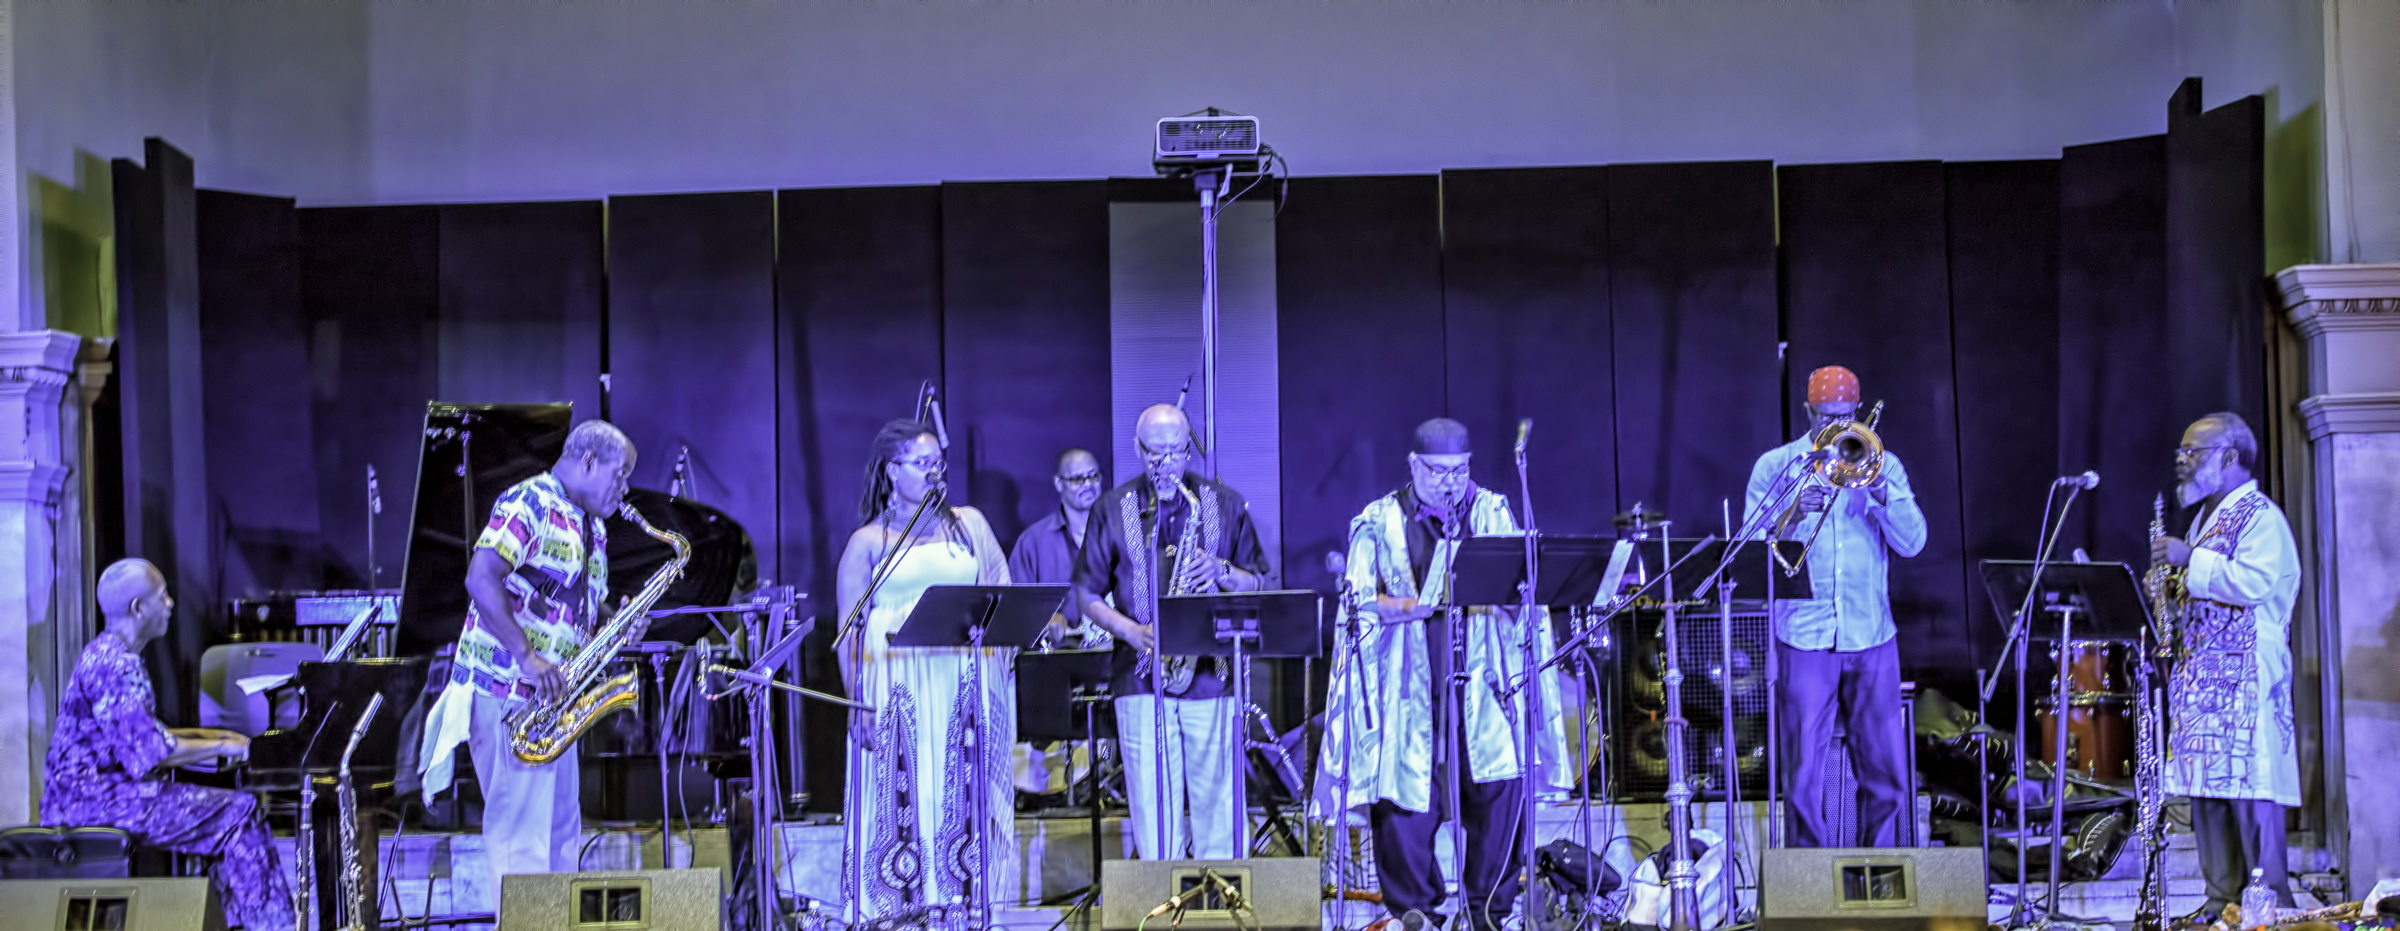 Adegoke Steve Colson, Edward Wilkerson, Mankwe Ndosi, Oliver Lake, J. D. Parran, Reggie Nicholson And Douglas R. Ewart With Quasar At The 20th Anniversary Vision Festival 2015